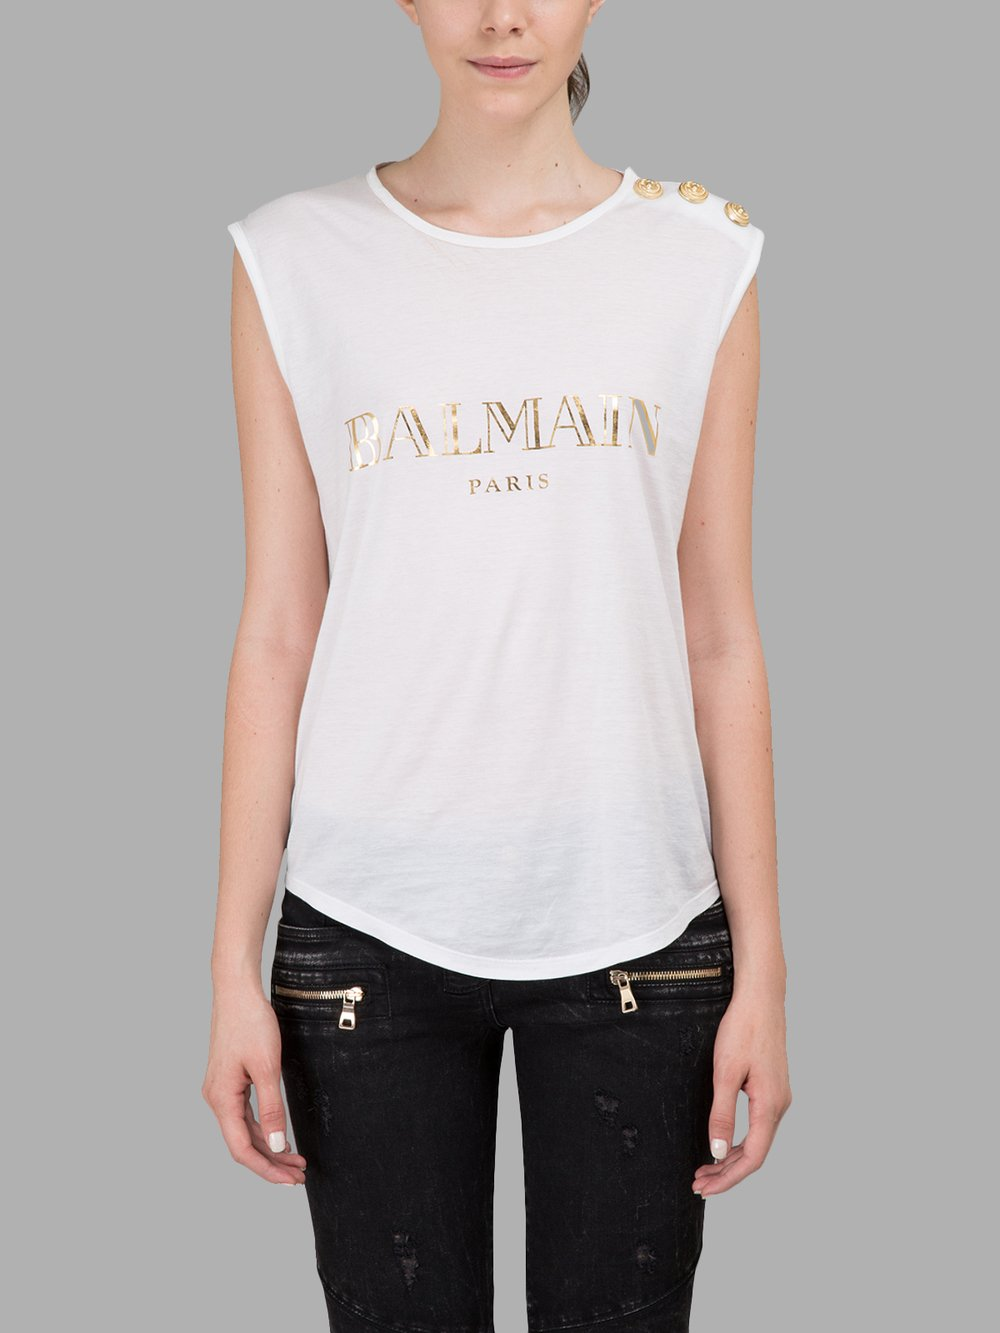 balmain t shirts. Black Bedroom Furniture Sets. Home Design Ideas